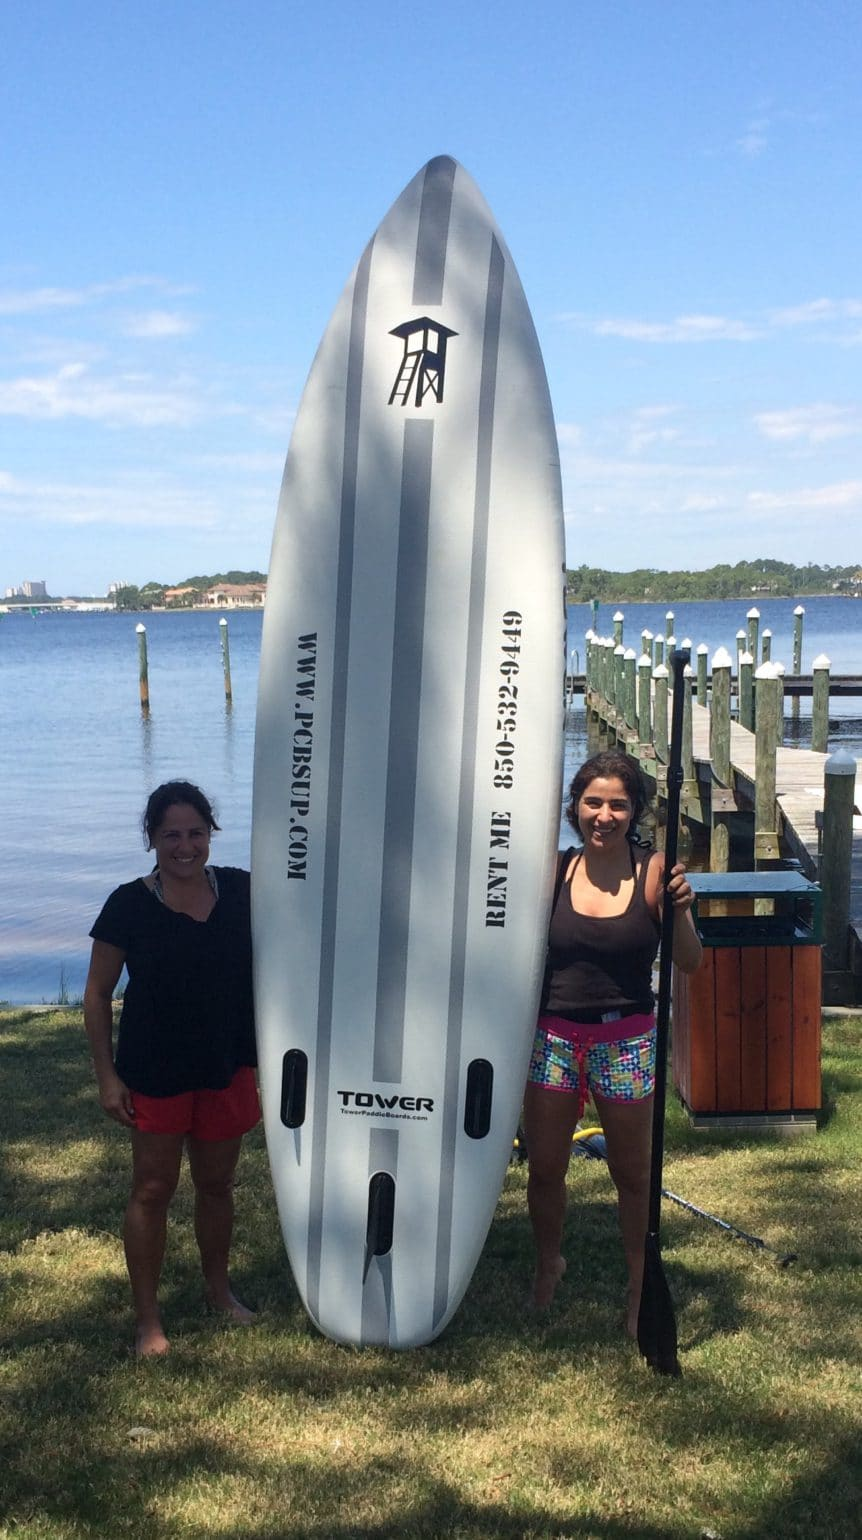 Baypoint Paddleboard Rentals